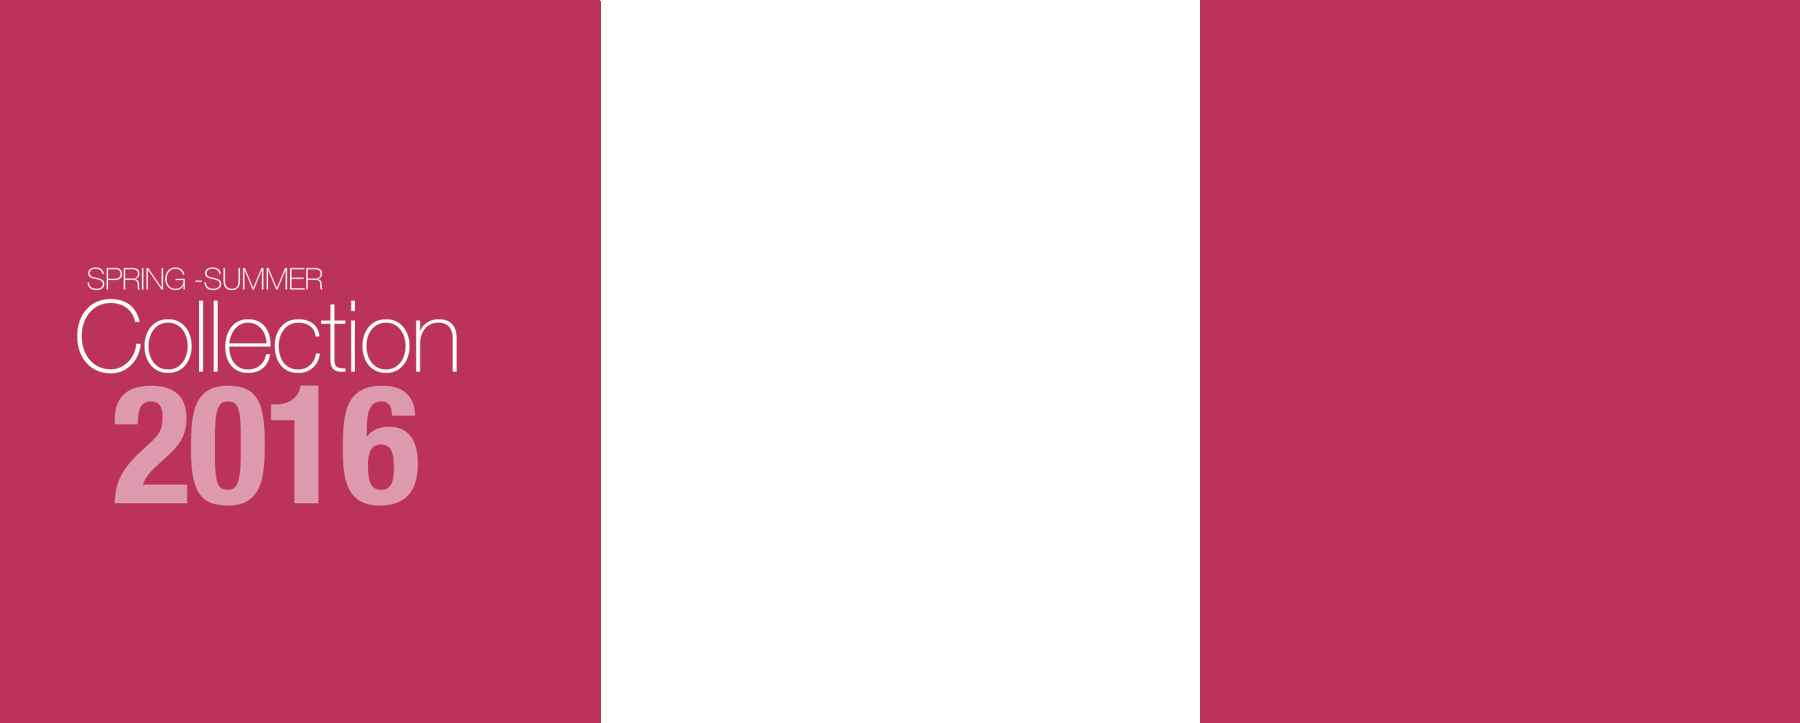 red screen